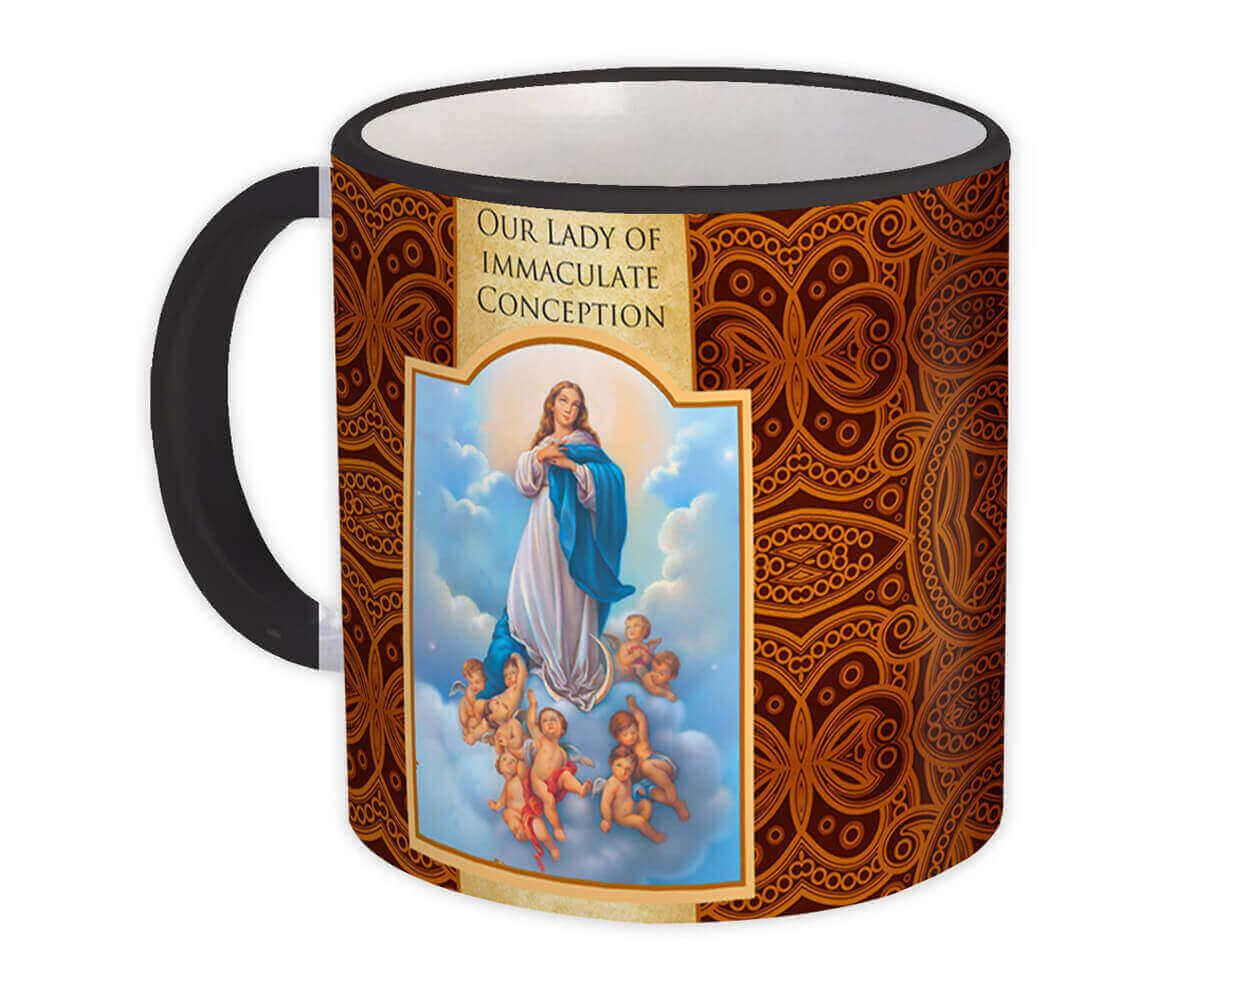 Our Lady of Immaculate Conception : Gift Mug Catholic Virgin Saint Mary